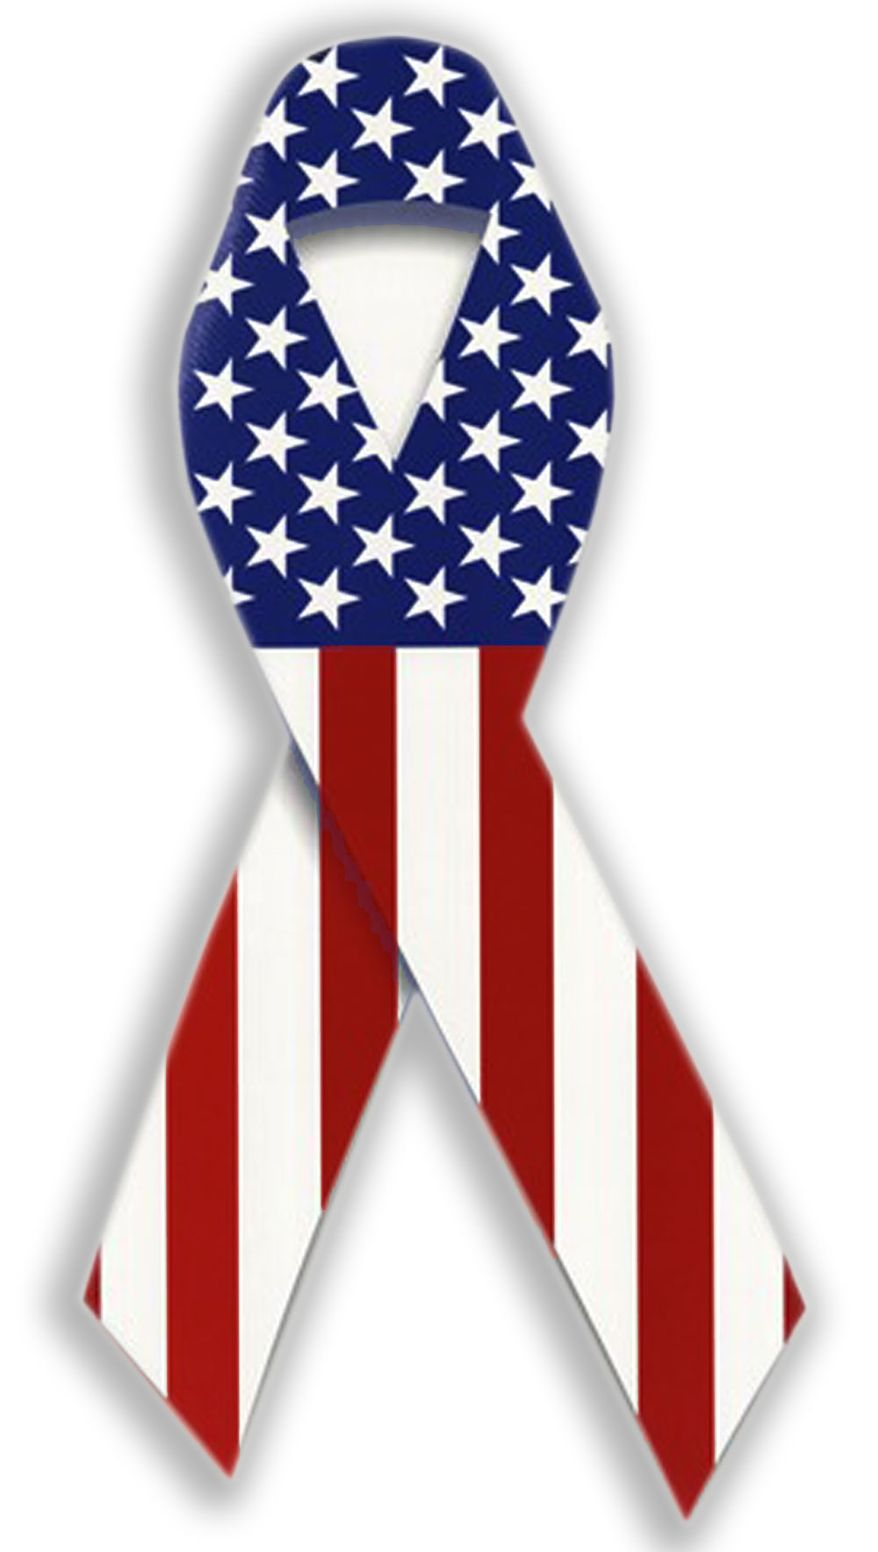 Illustration American Flag Ribbon by John Camejo for The Washington Times